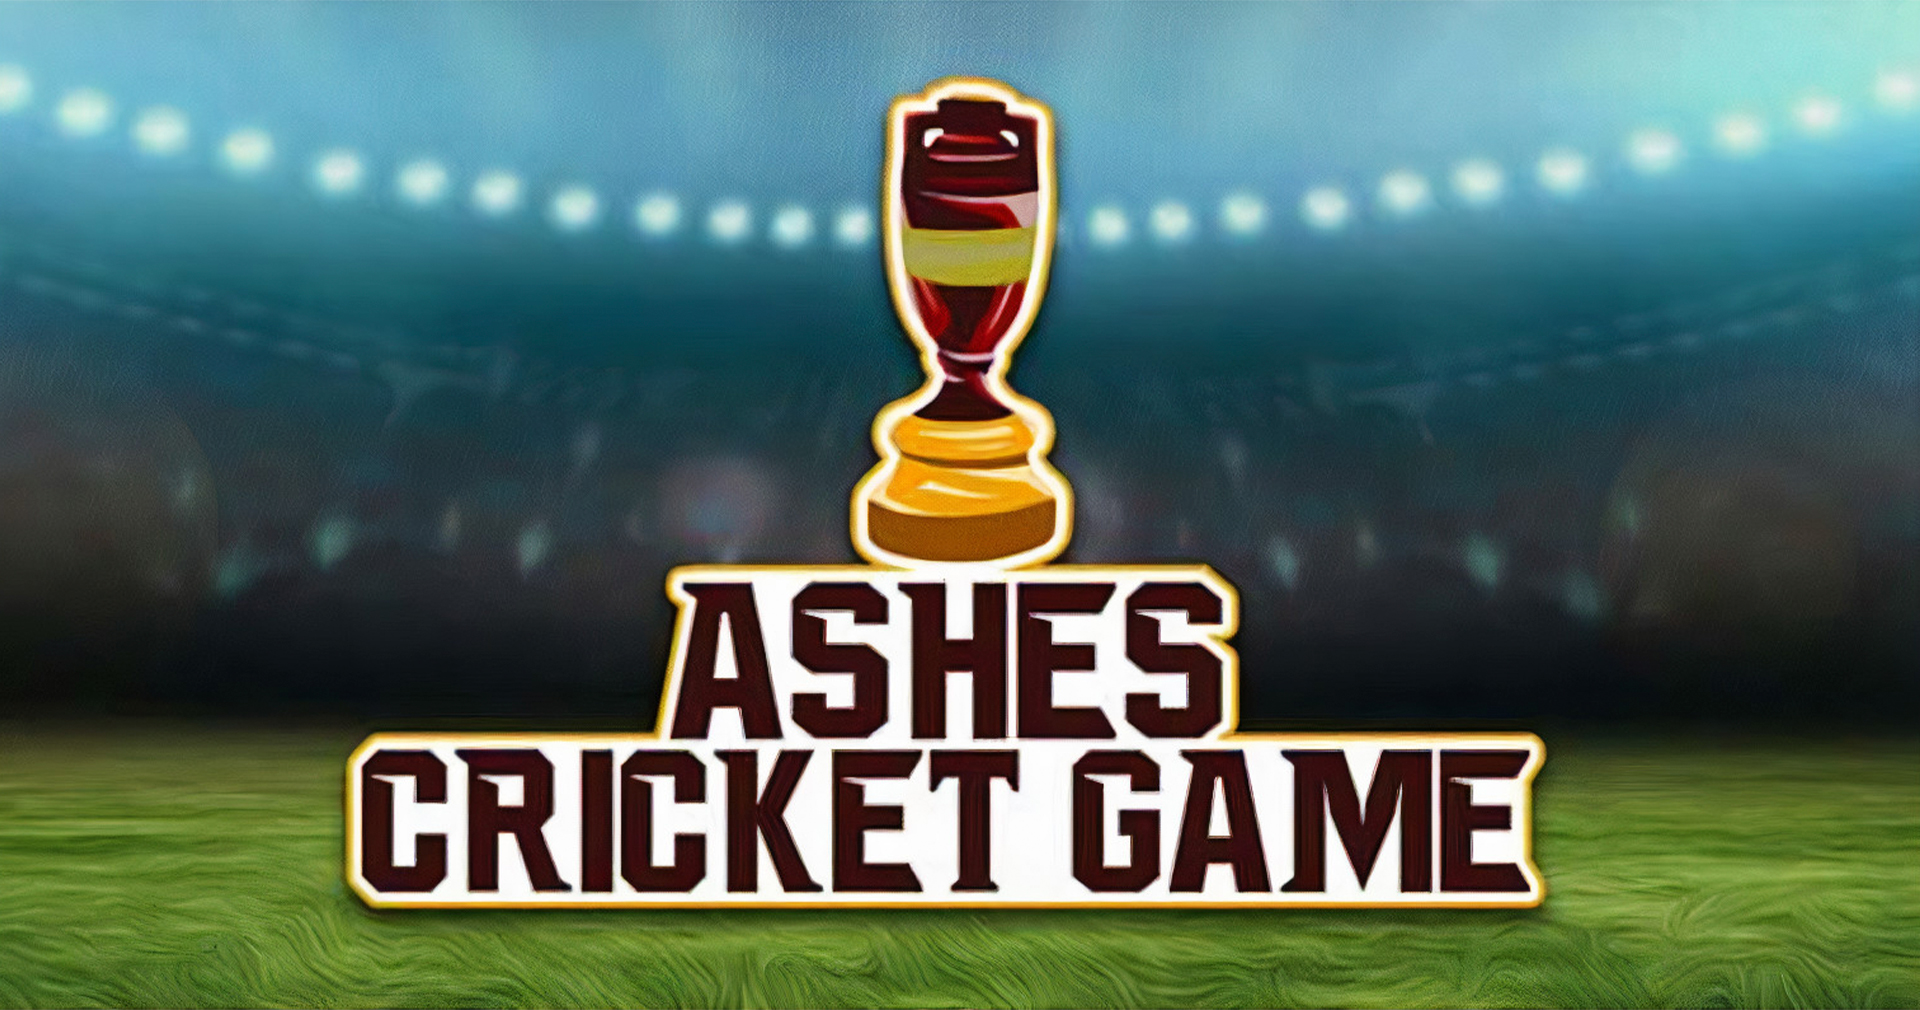 You can place bets on The Ashes Series after registering on the site